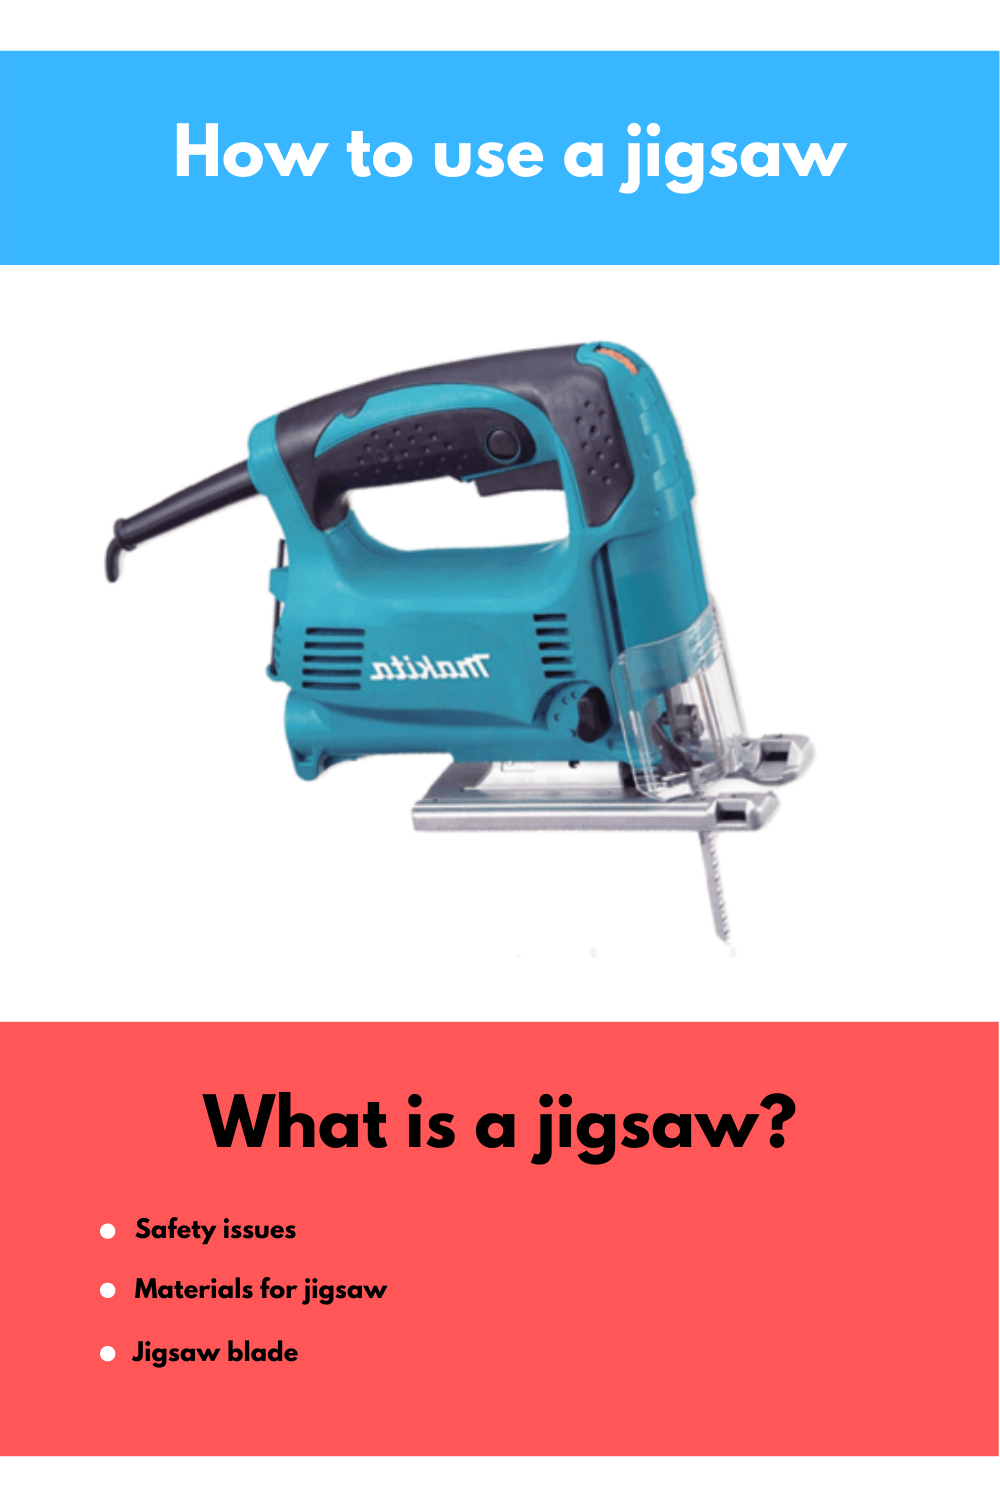 How to use a jigsaw in 2020 | Jigsaw, Power tools, Being used